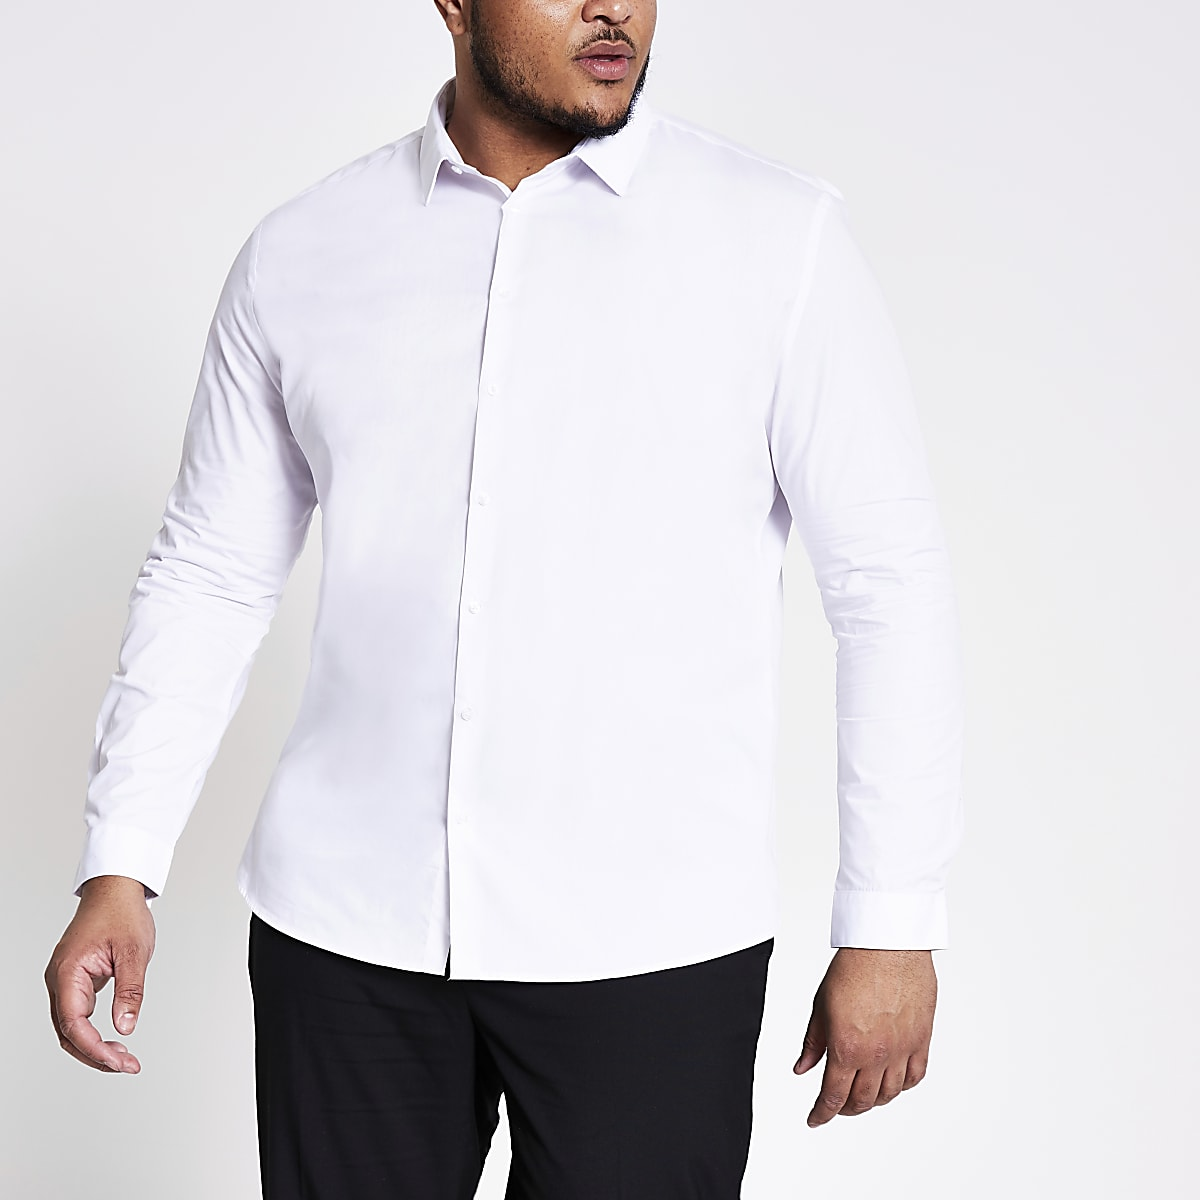 8eb1bdff29c8a8 Big and Tall white slim fit smart shirt - Long Sleeve Shirts - Shirts - men